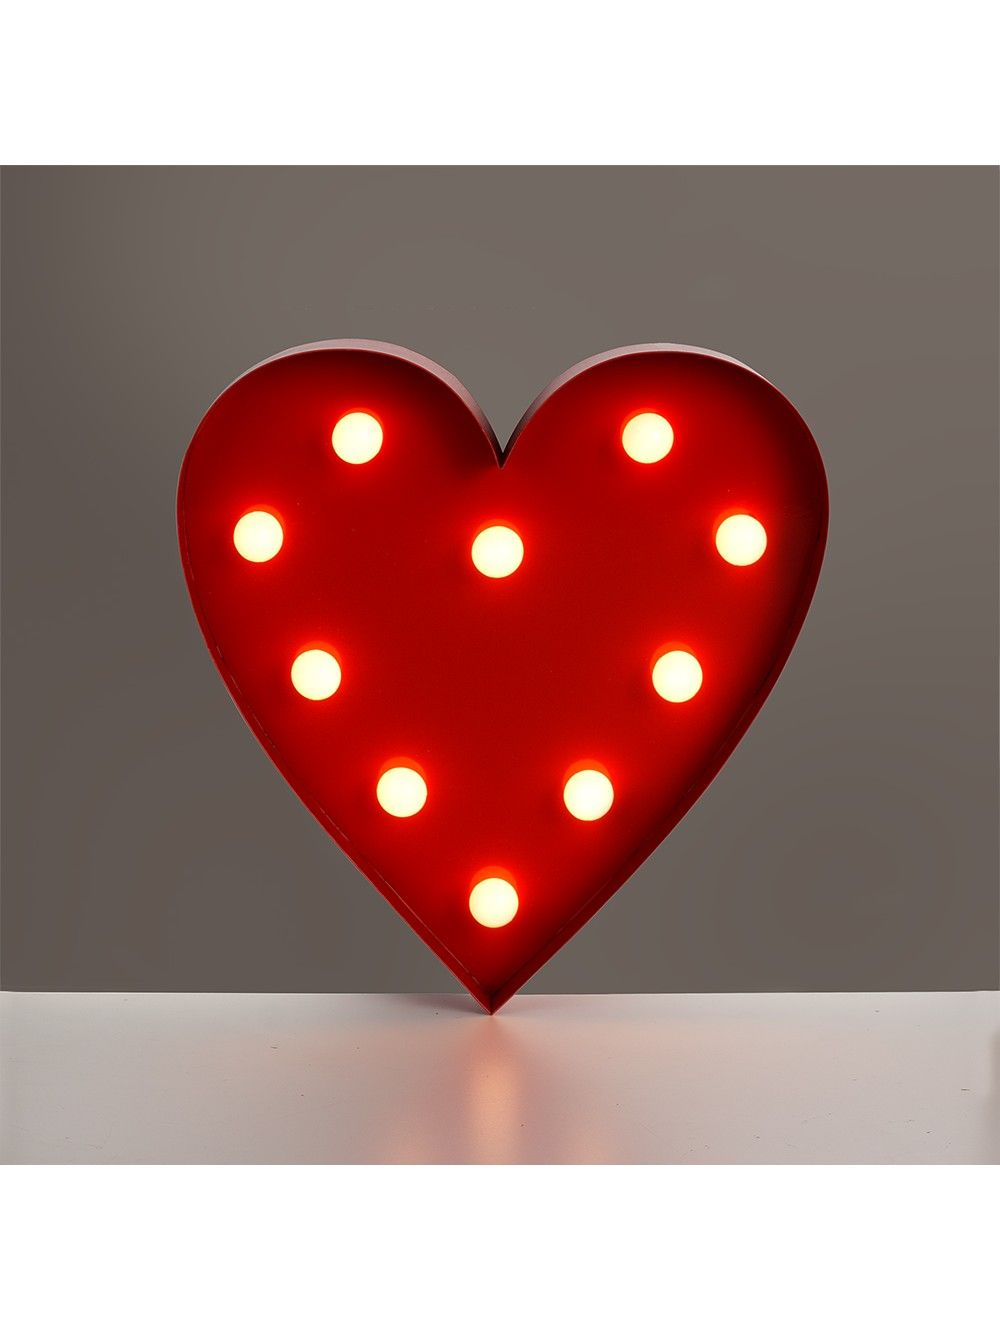 RED HEART SHAPED WALL HANGING WITH WARM WHITE LEDS LIGHTs